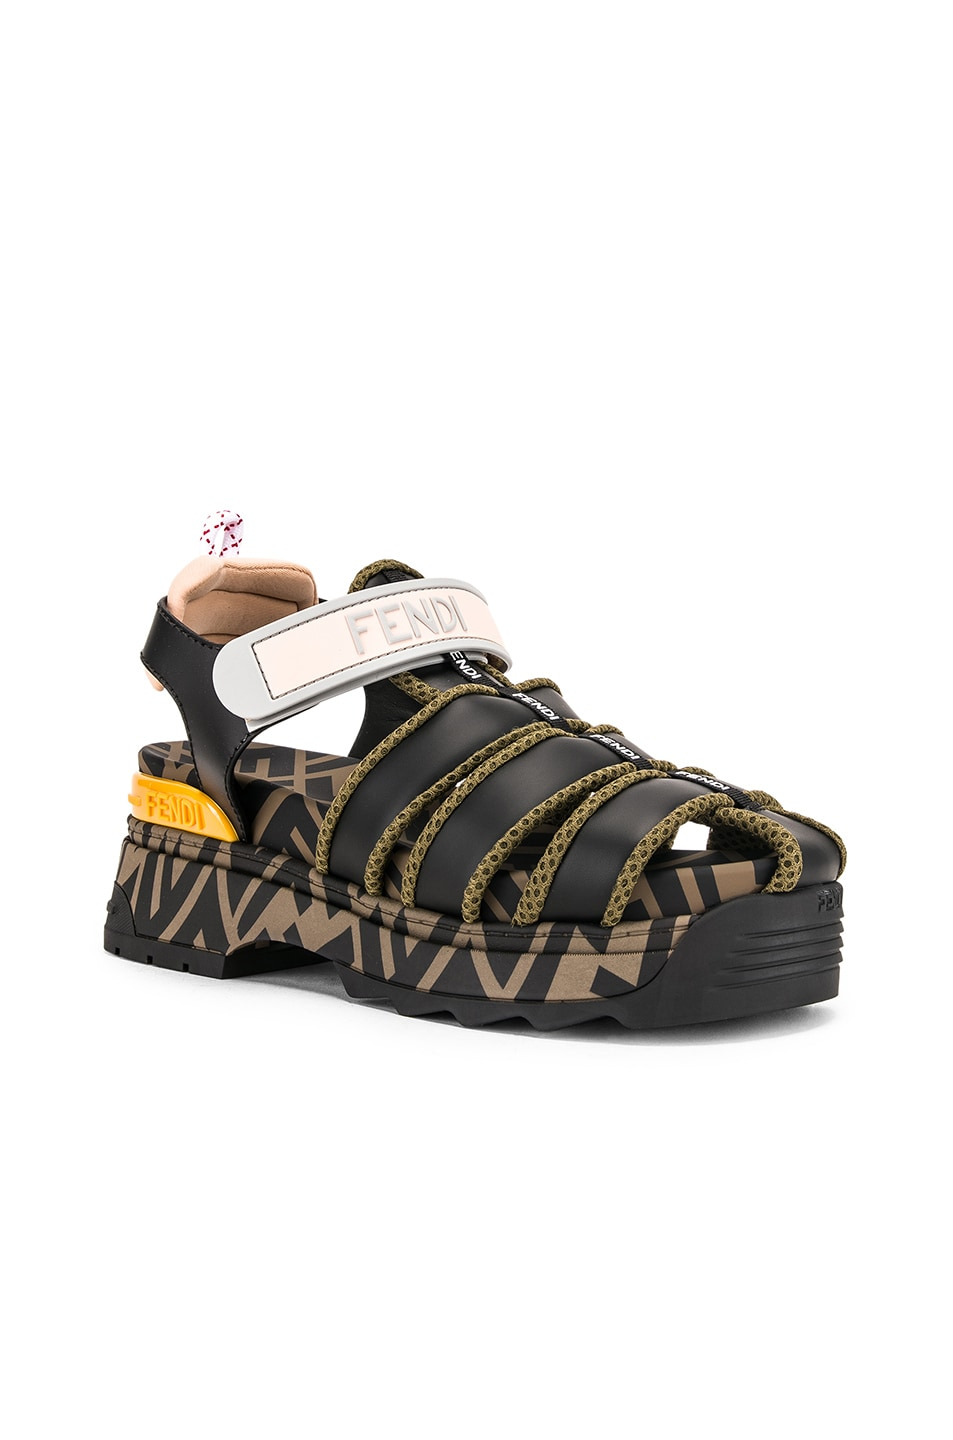 Image 3 of Fendi T Rex Sandals in Black